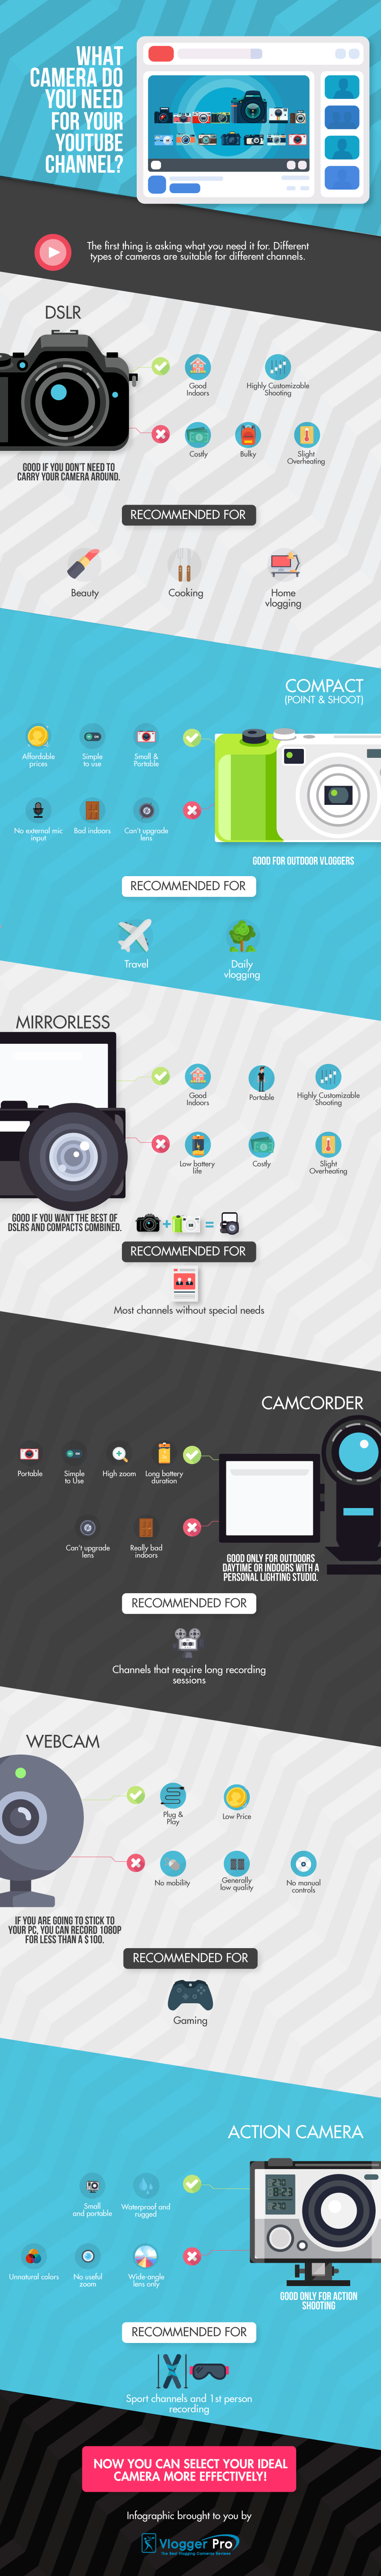 infographic: how to choose between the best youtube cameras types